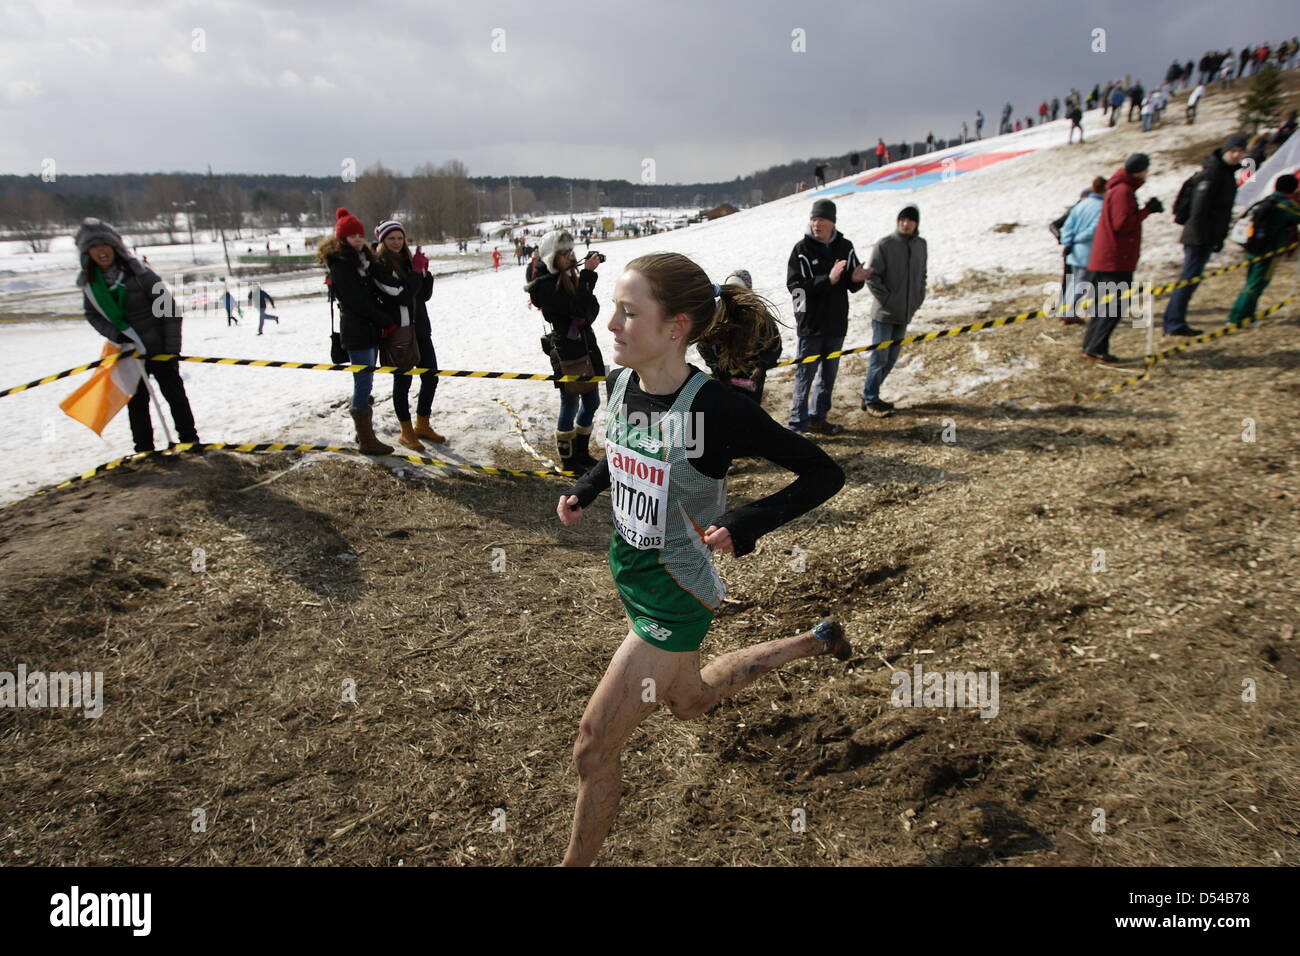 Bydgoszcz, Poland 24th, March 2013 IAAF World Cross Country Chamiponships. Senior Race Woman.  Pictured: Fionnuala - Stock Image